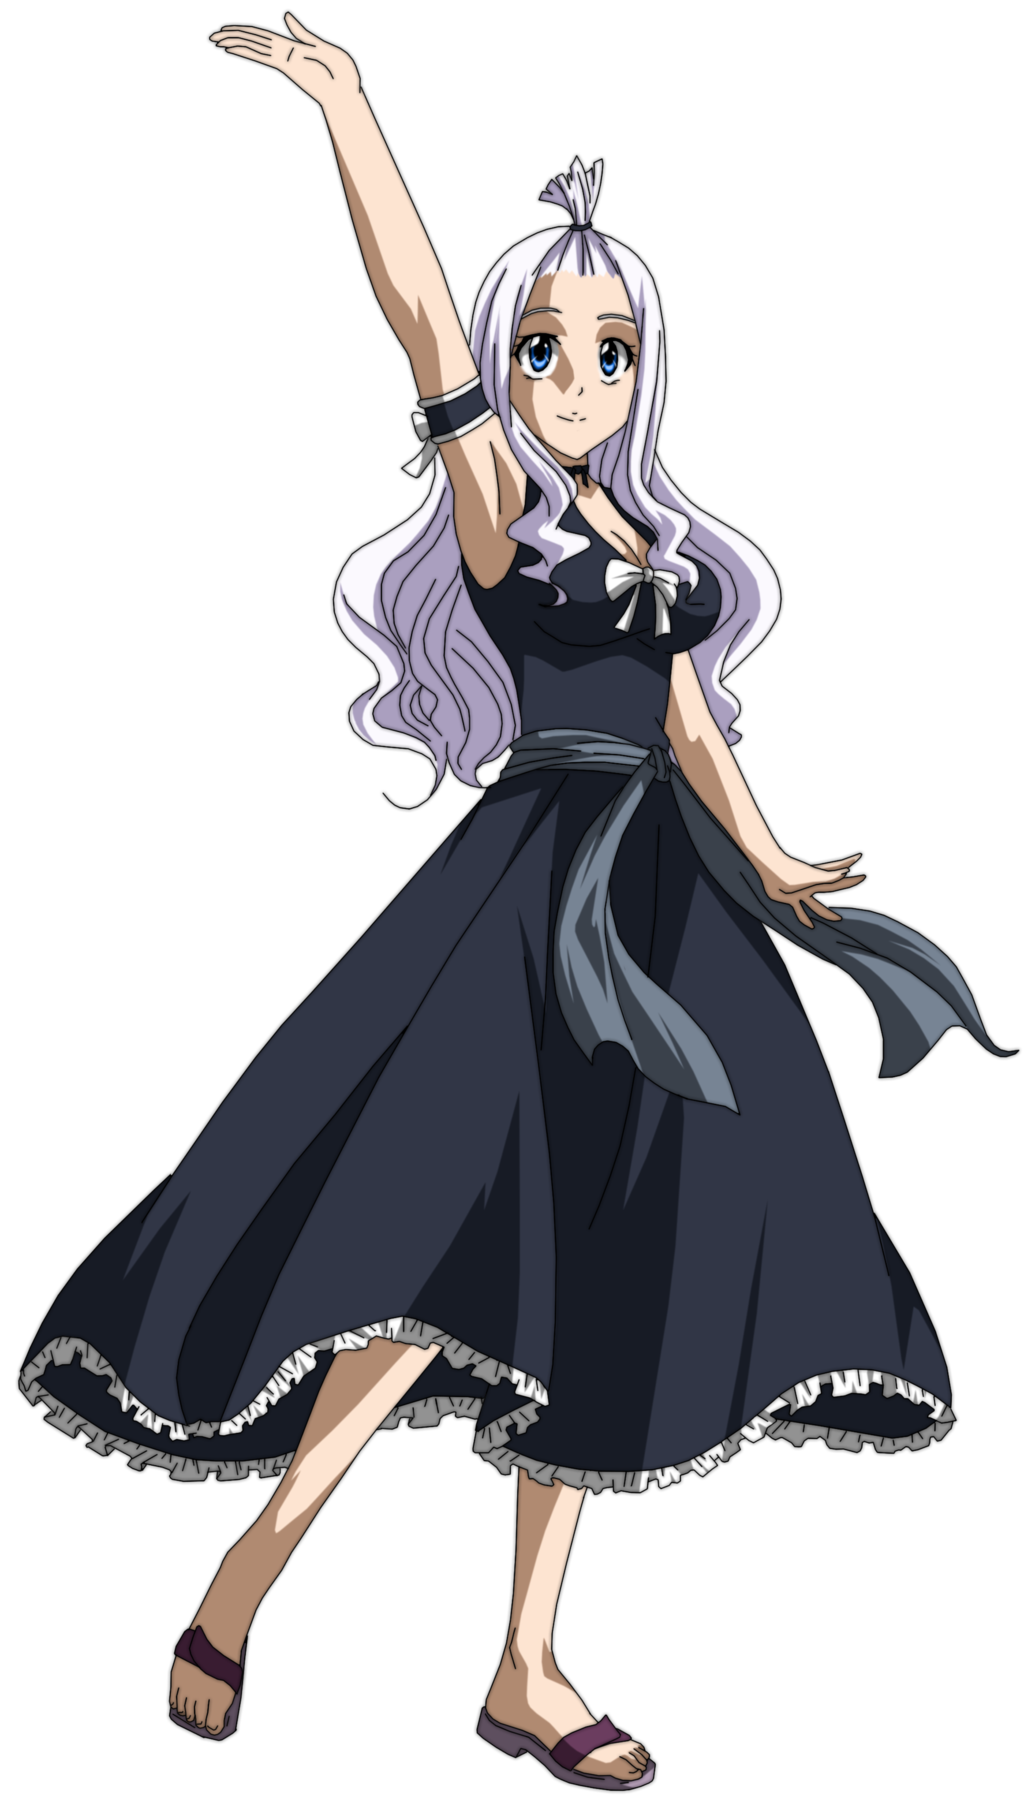 Mirajane Strauss Five World War Wikia Fandom Find gifs with the latest and newest hashtags! mirajane strauss five world war wikia